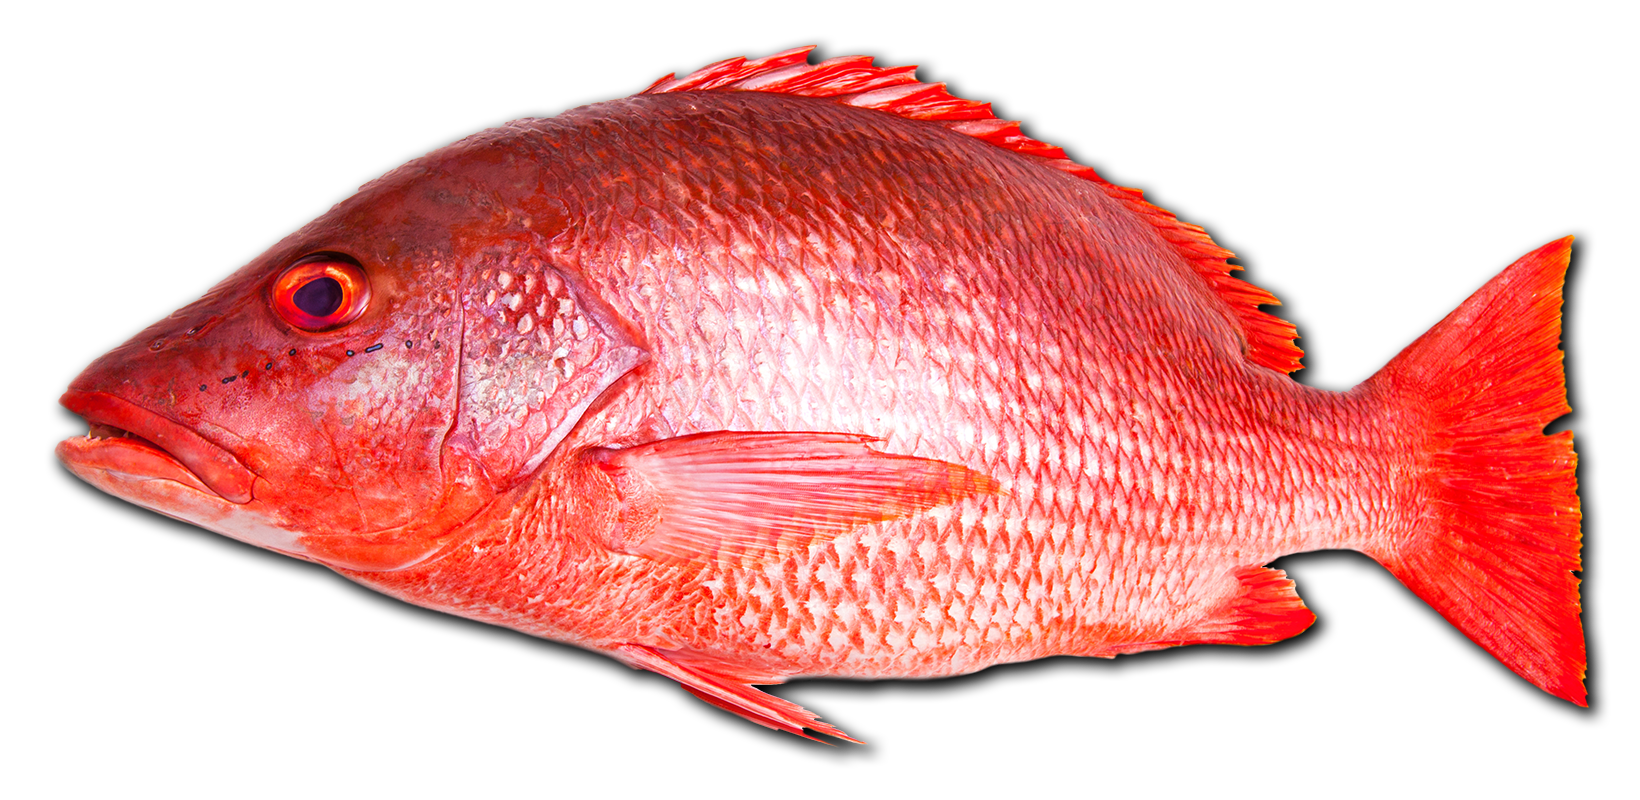 Red fish png. Northern snapper seafood vermilion